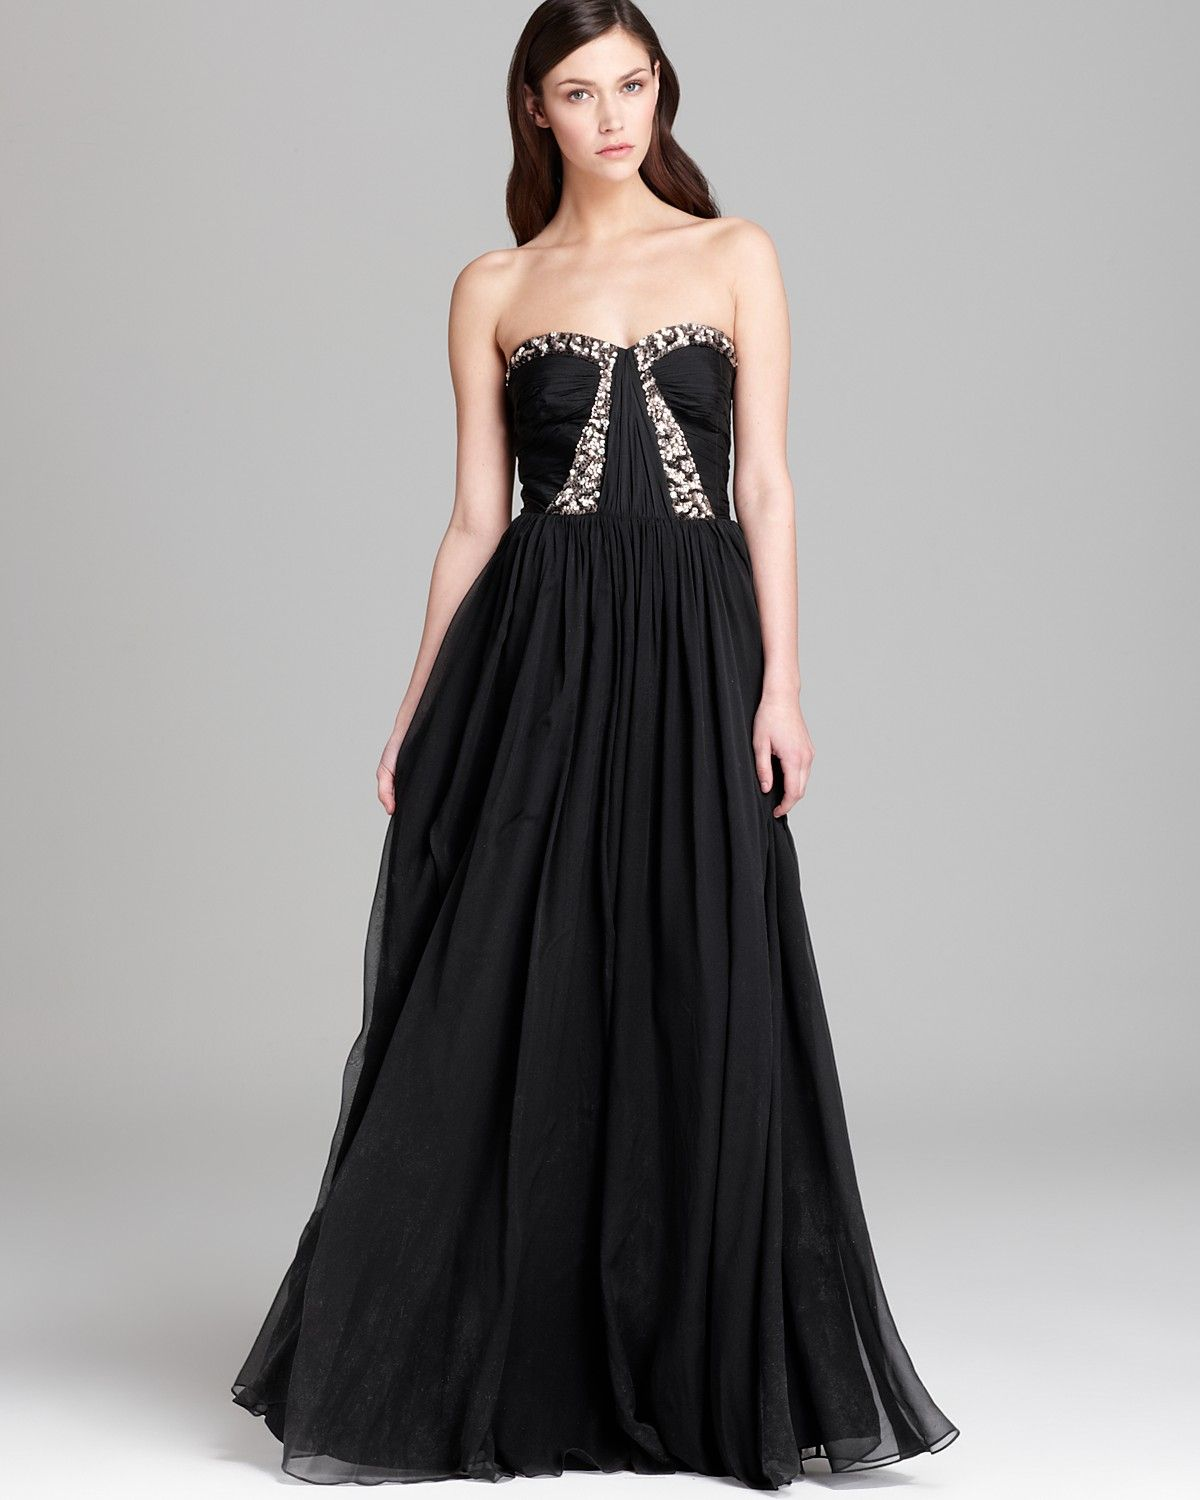 Rebecca Taylor Gown - with Floral Beading | Bloomingdales | Party ...